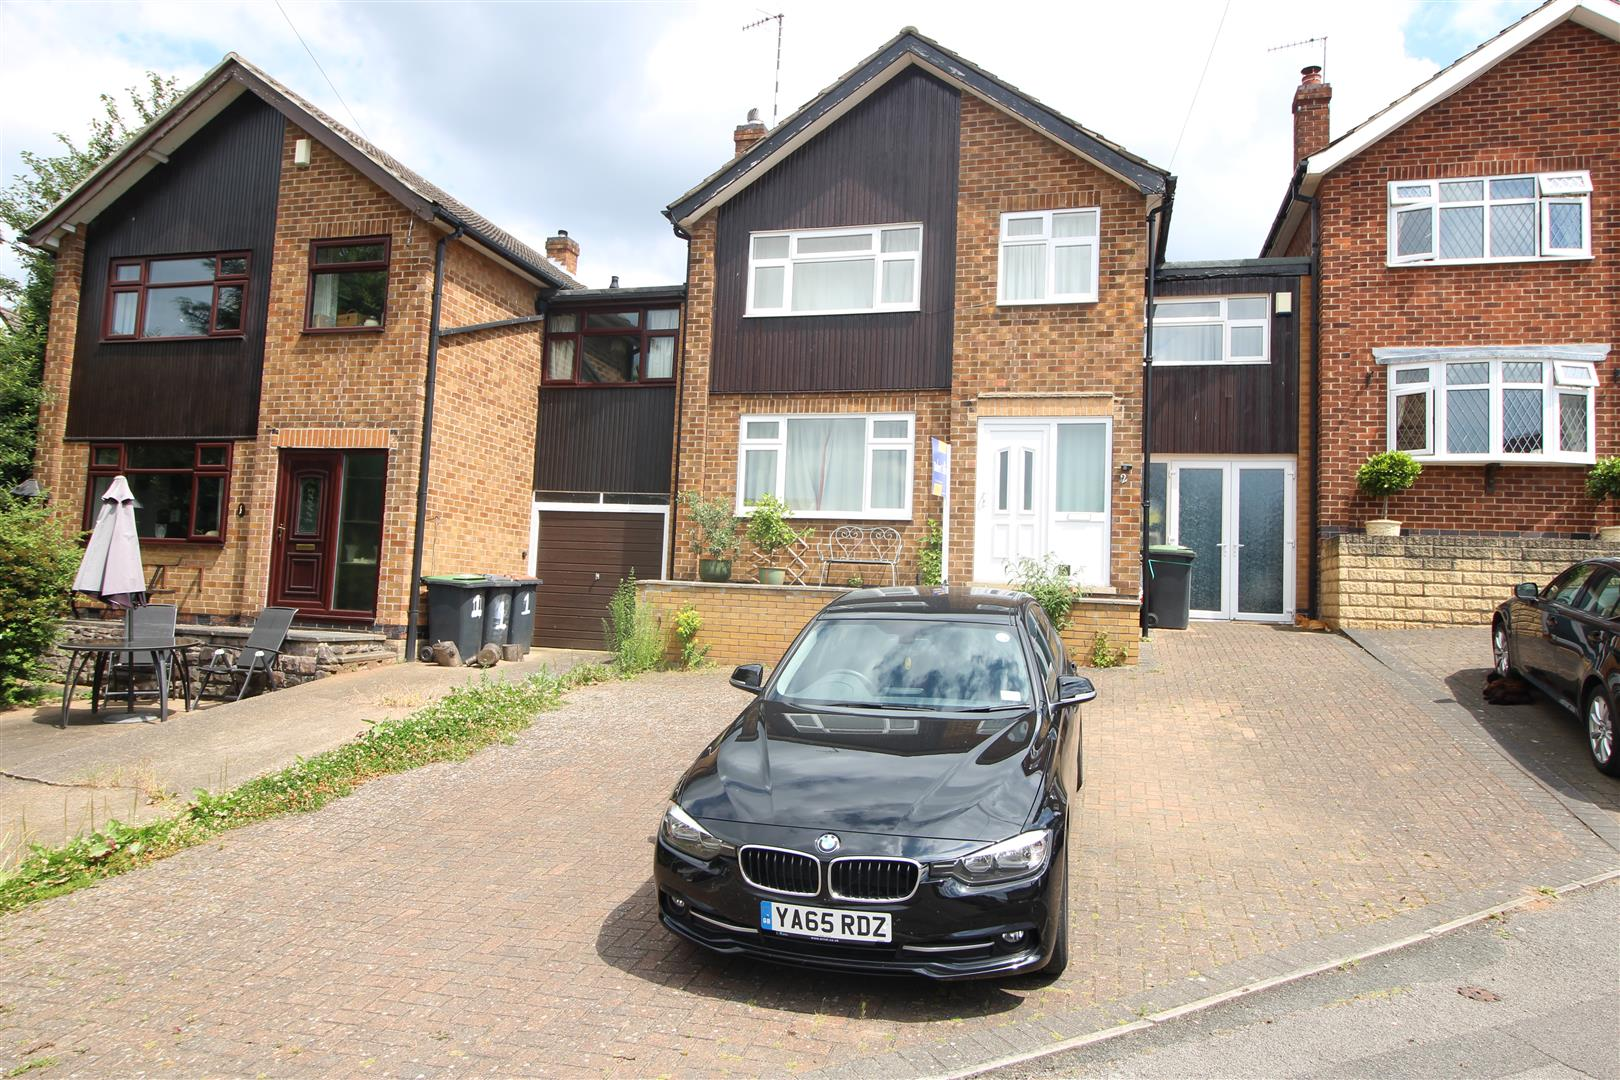 4 Bedrooms Detached House for sale in Willow Avenue, Stapleford